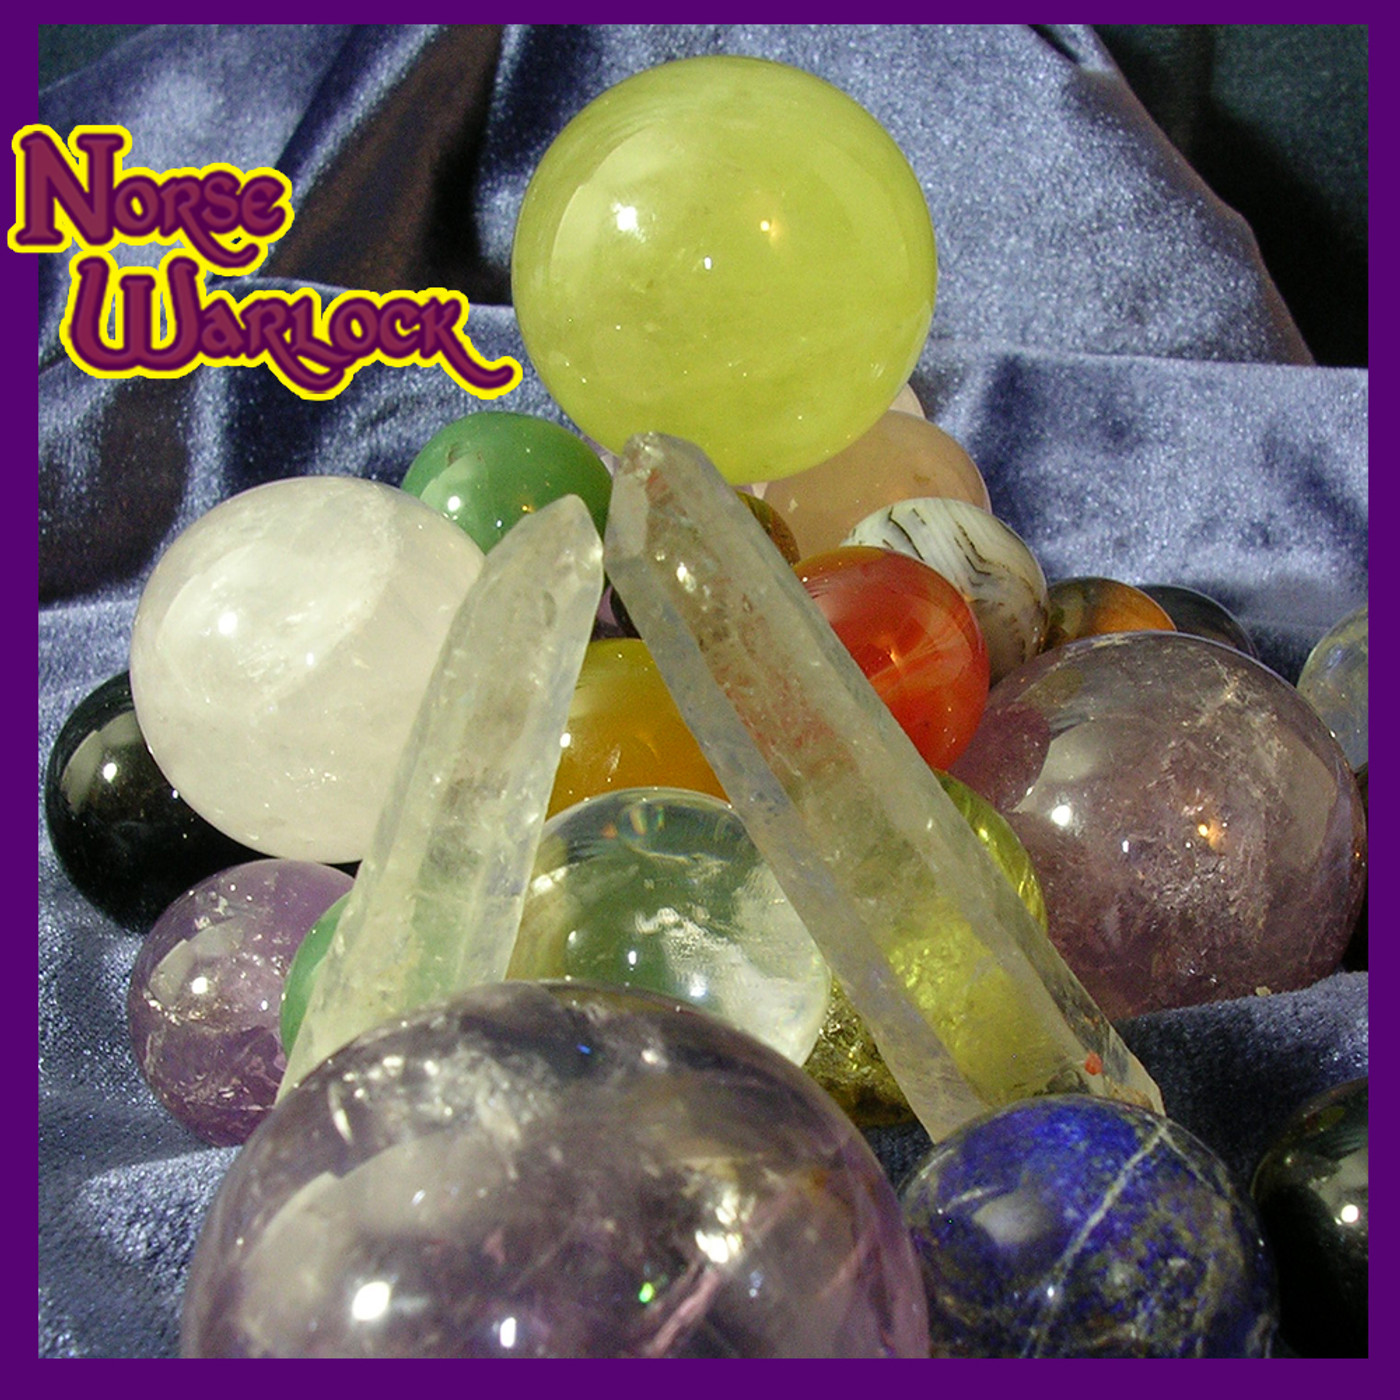 Magic Magick Gemstone Spheres Orbs Metaphysical Paranormal